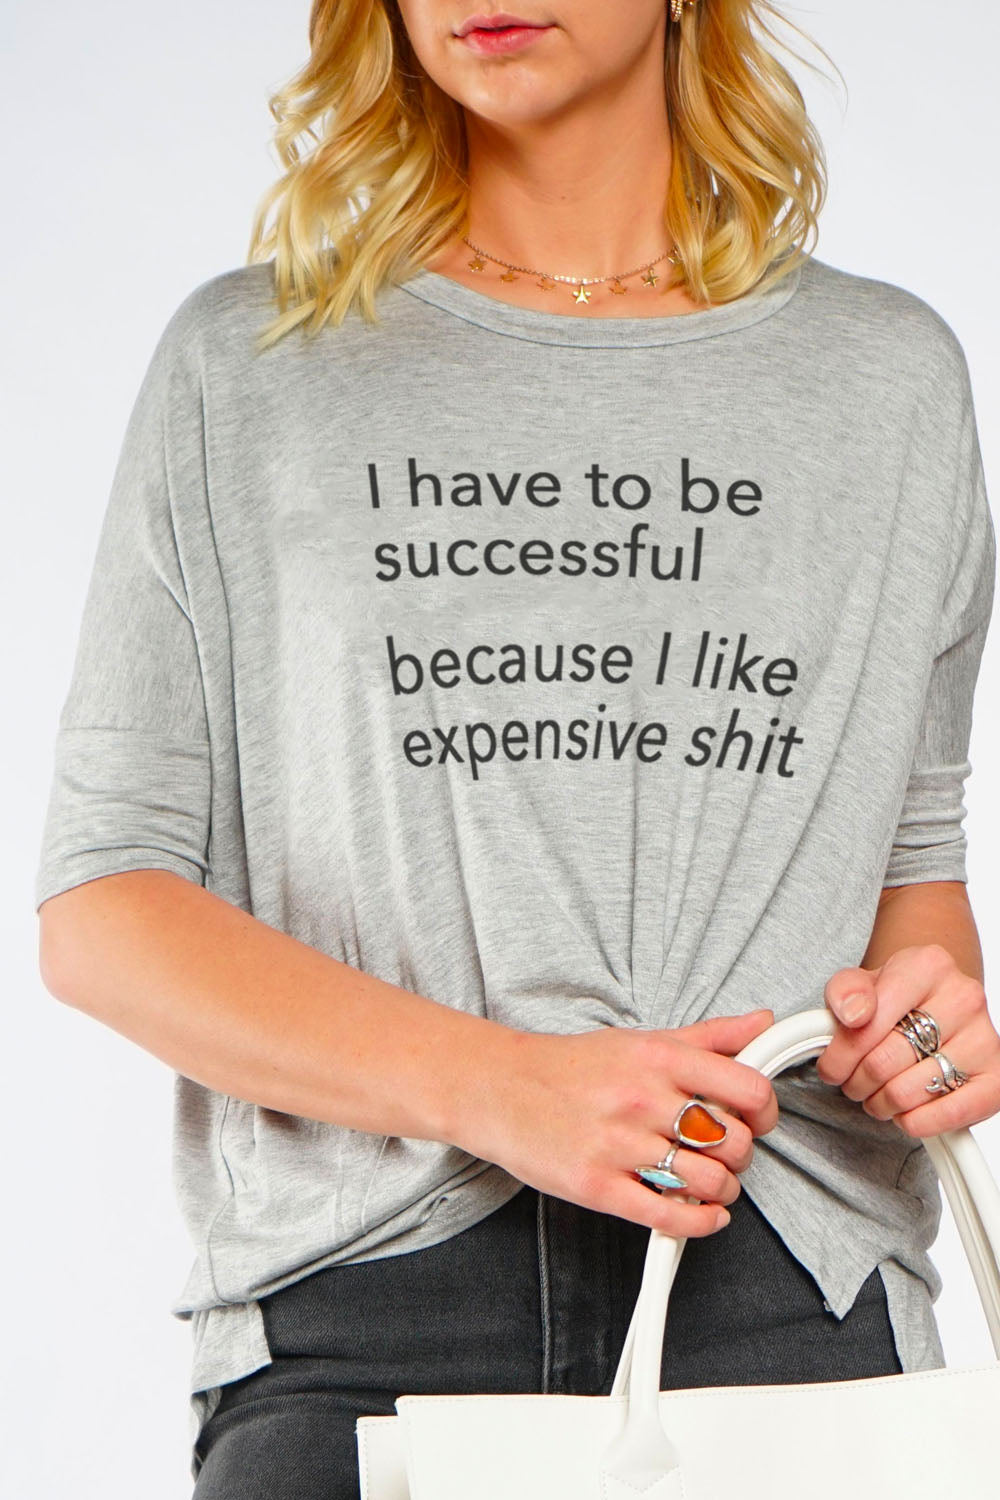 MIMI TEE - I Have To Be Successful I Like Expensive S#@t